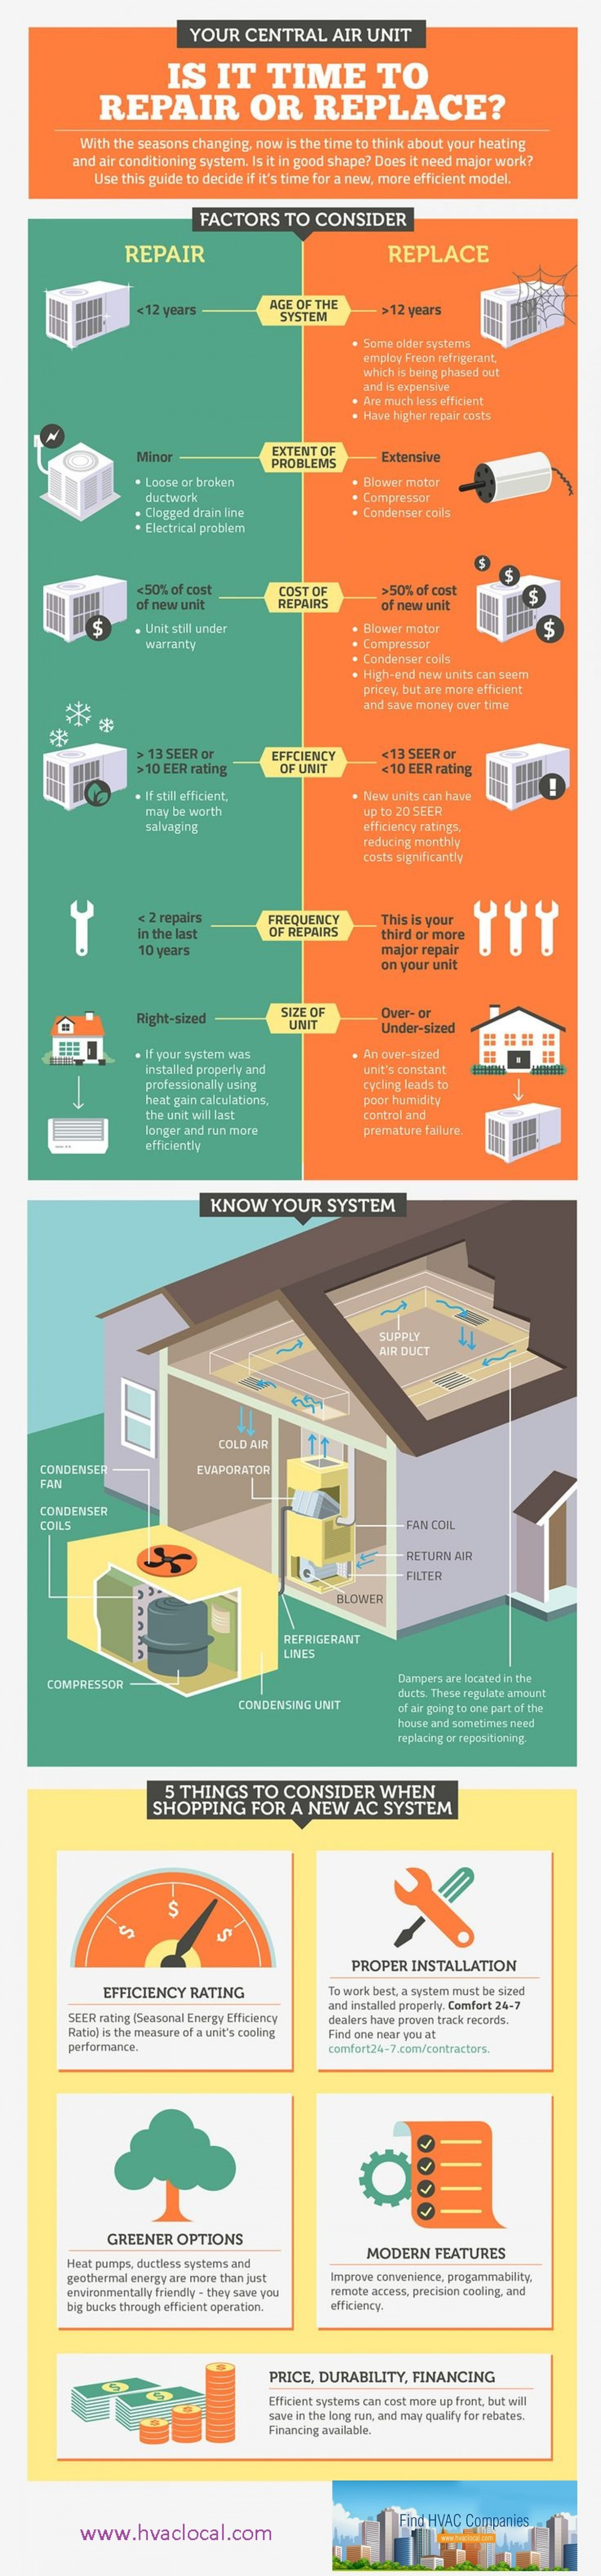 Is it time to repair or replace your central AC unit? Infographic